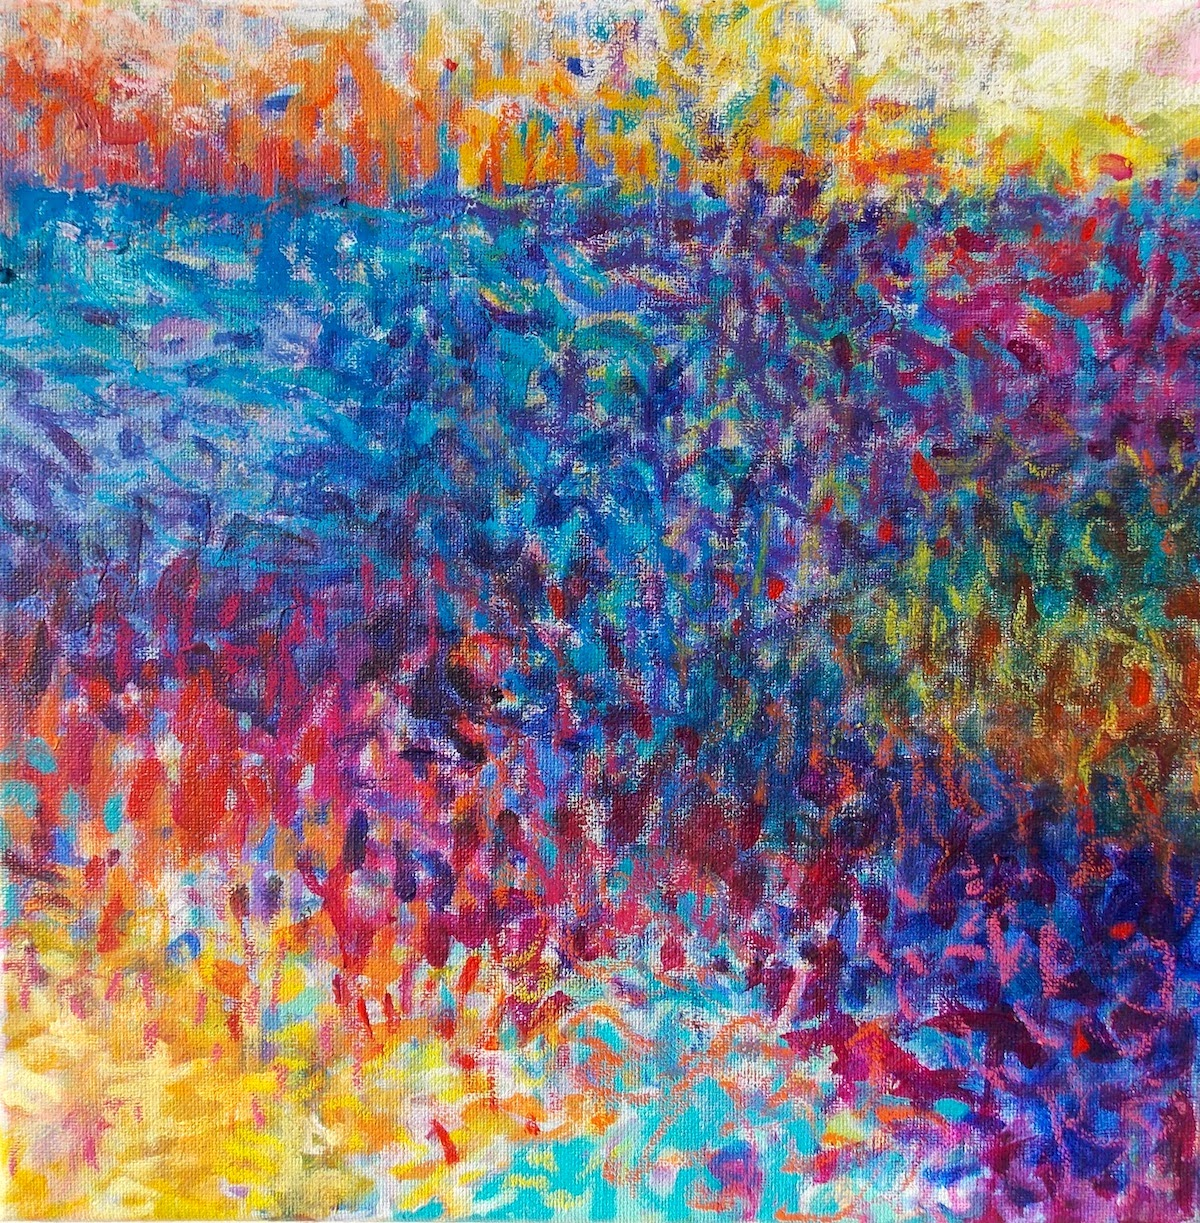 https://www.etsy.com/listing/186603159/abstract-landscape-painting-original-art